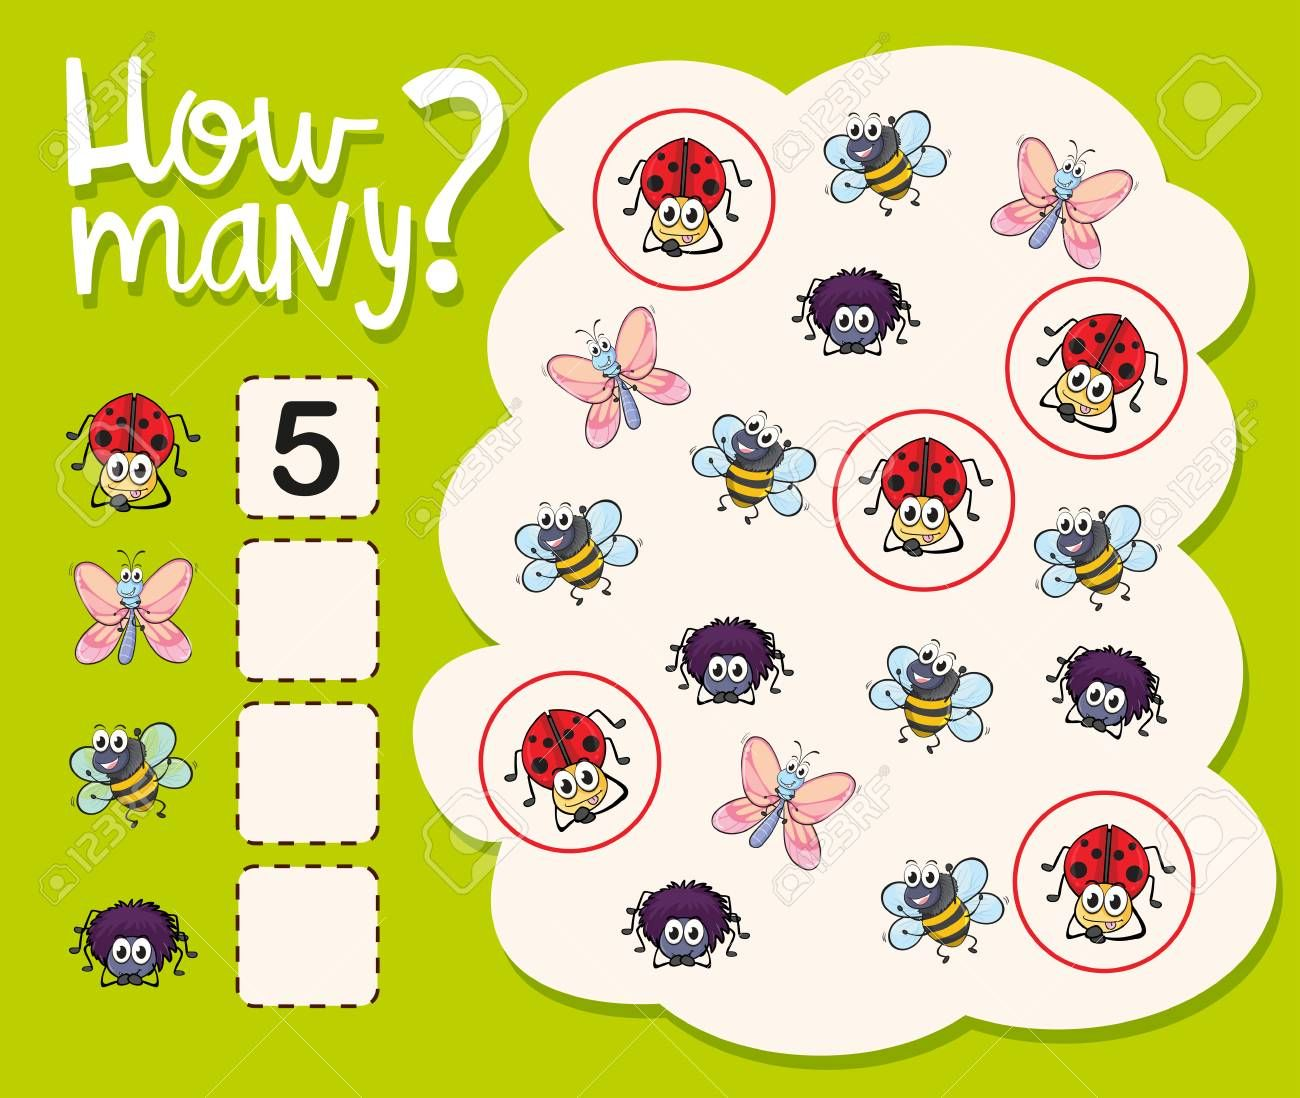 How Many Worksheet With Many Insects Illustration